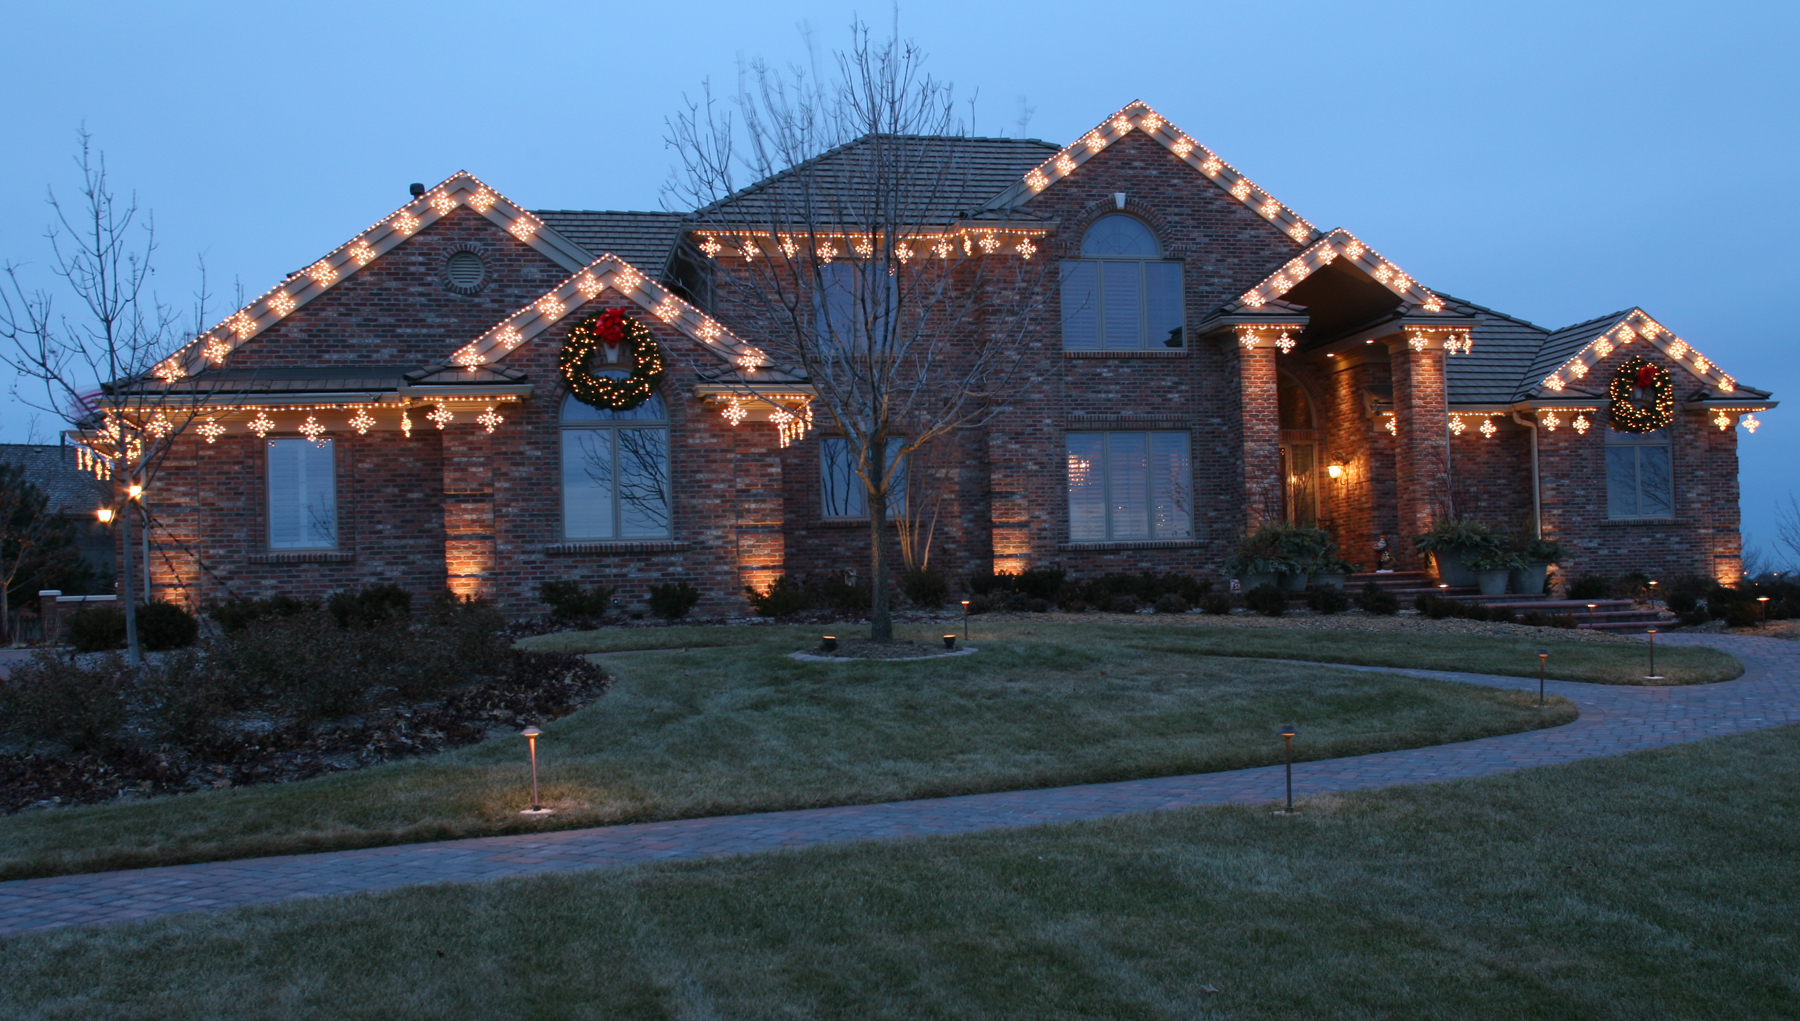 Christmas Light Displays In St Louis.Dunn S Lawn Service St Louis Mo Christmas Light Displays